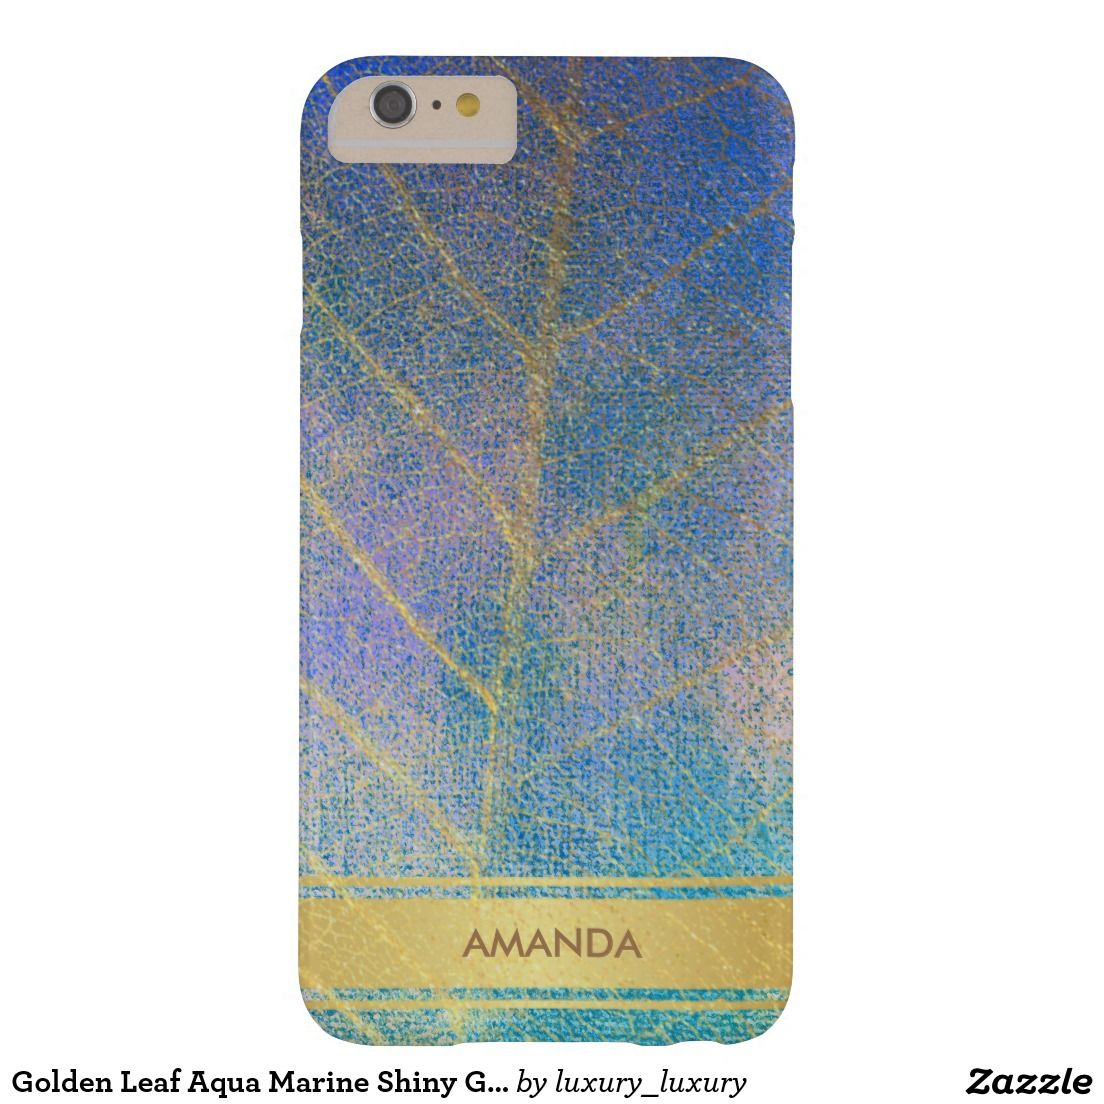 Golden Leaf Aqua Marine Shiny Glam Minimimalism Barely There iPhone 6 Plus Case